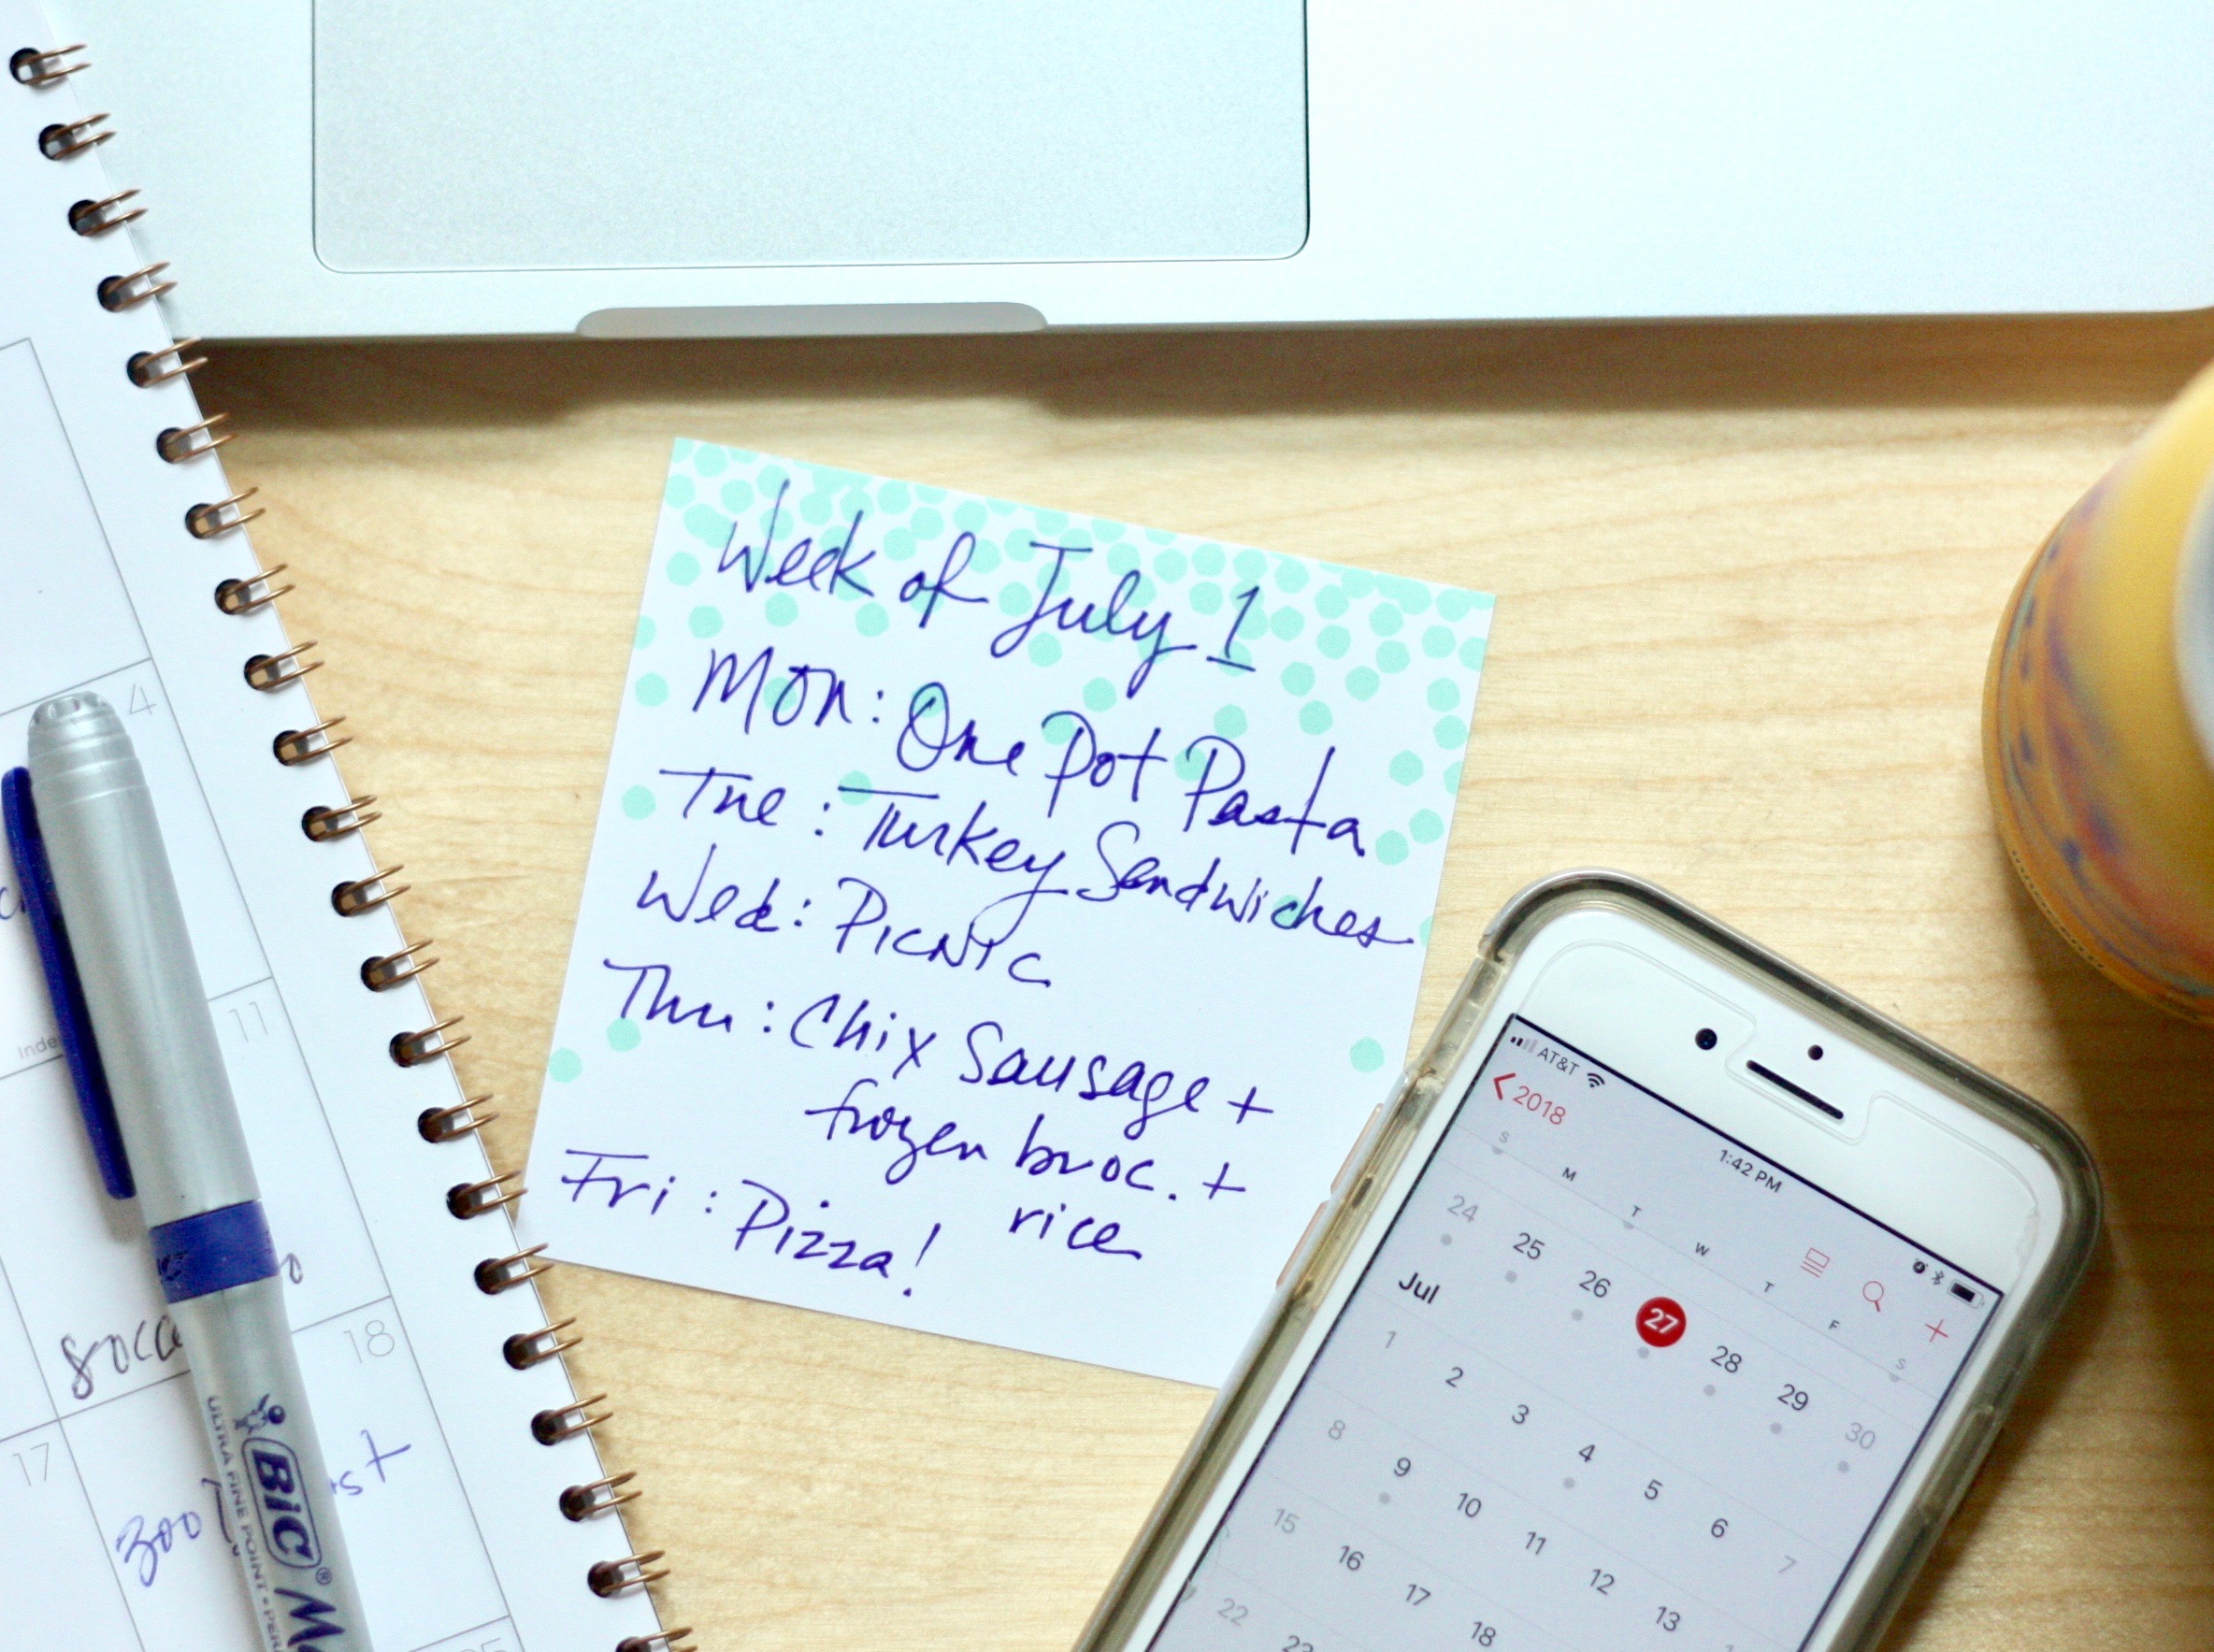 Image showing a desk with computer, iPhone, and meal plan notes